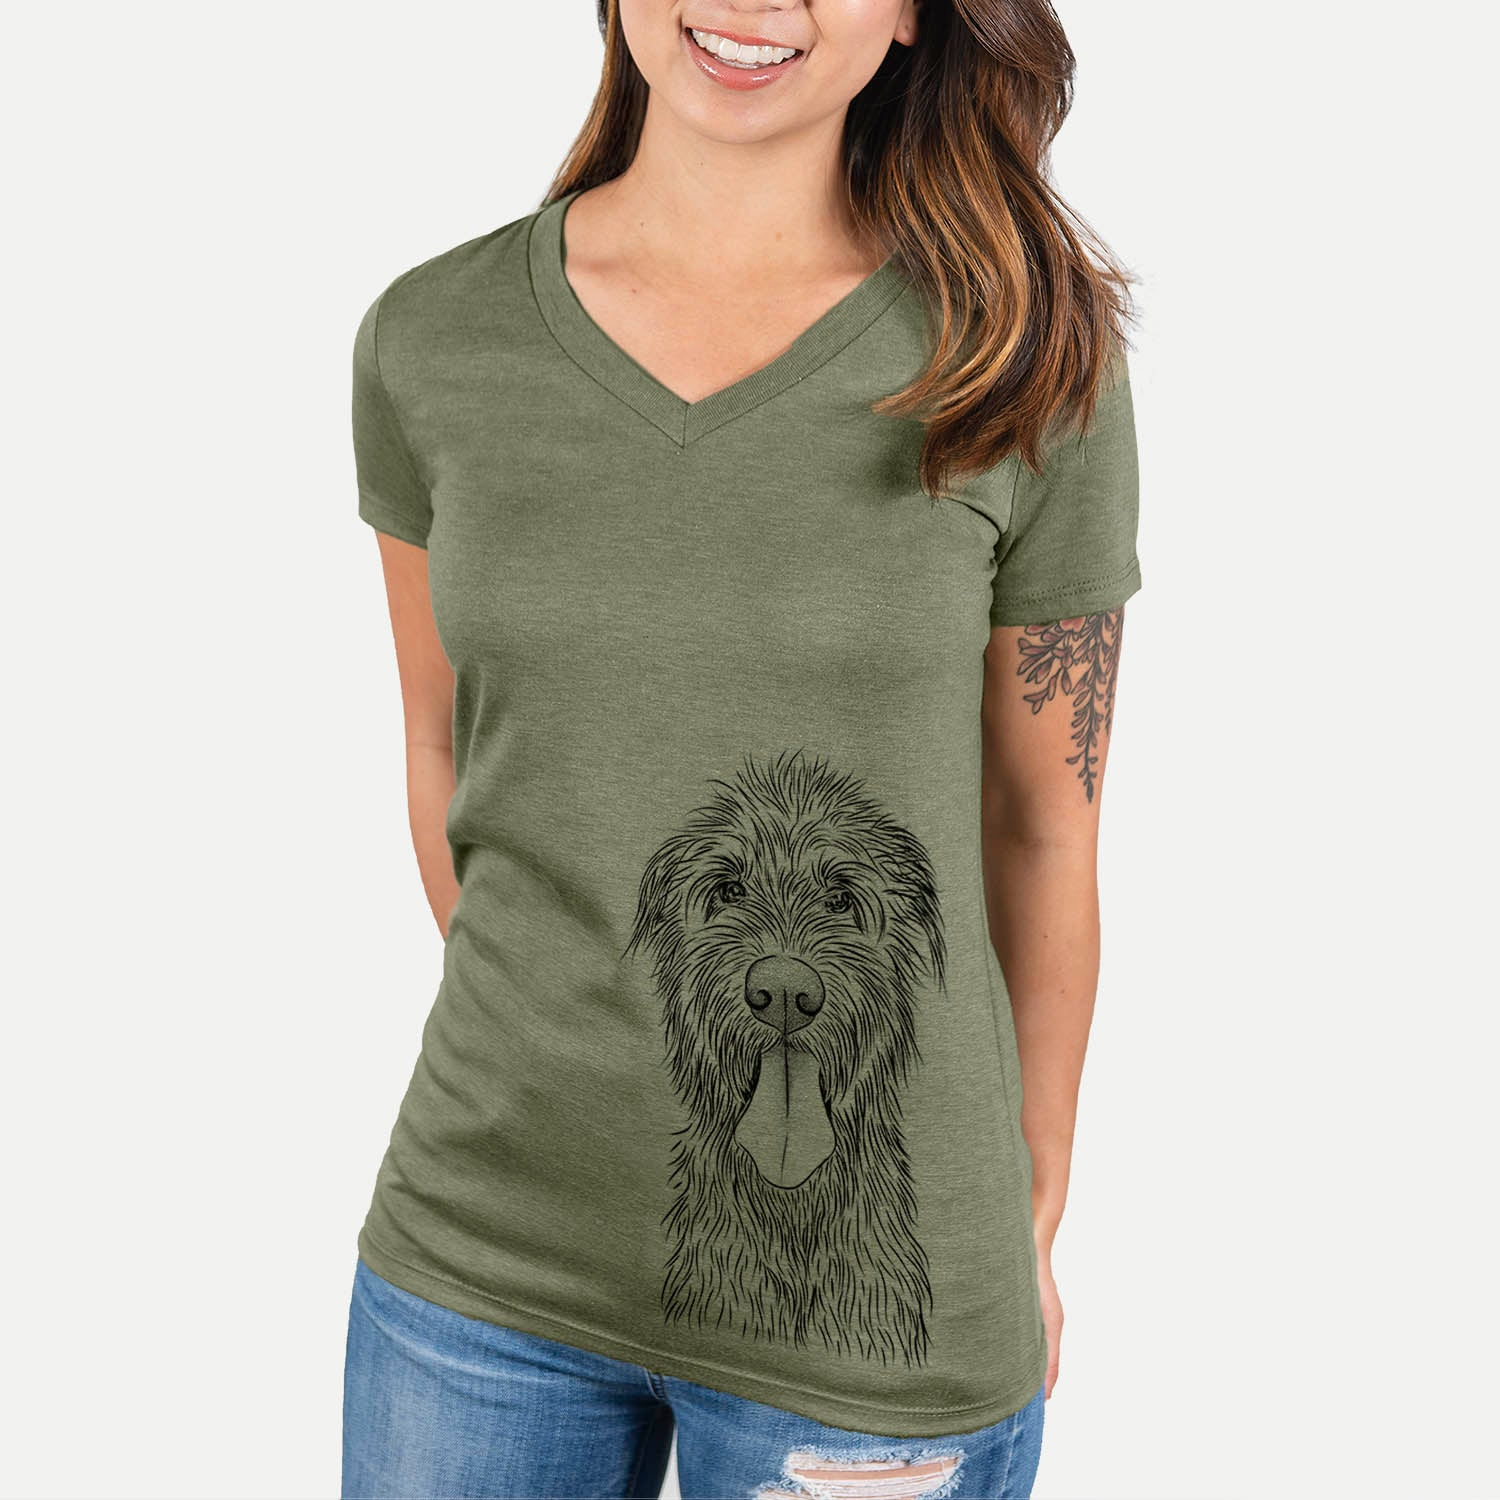 Sullivan the Irish Wolfhound - Women's Modern Fit V-neck Shirt